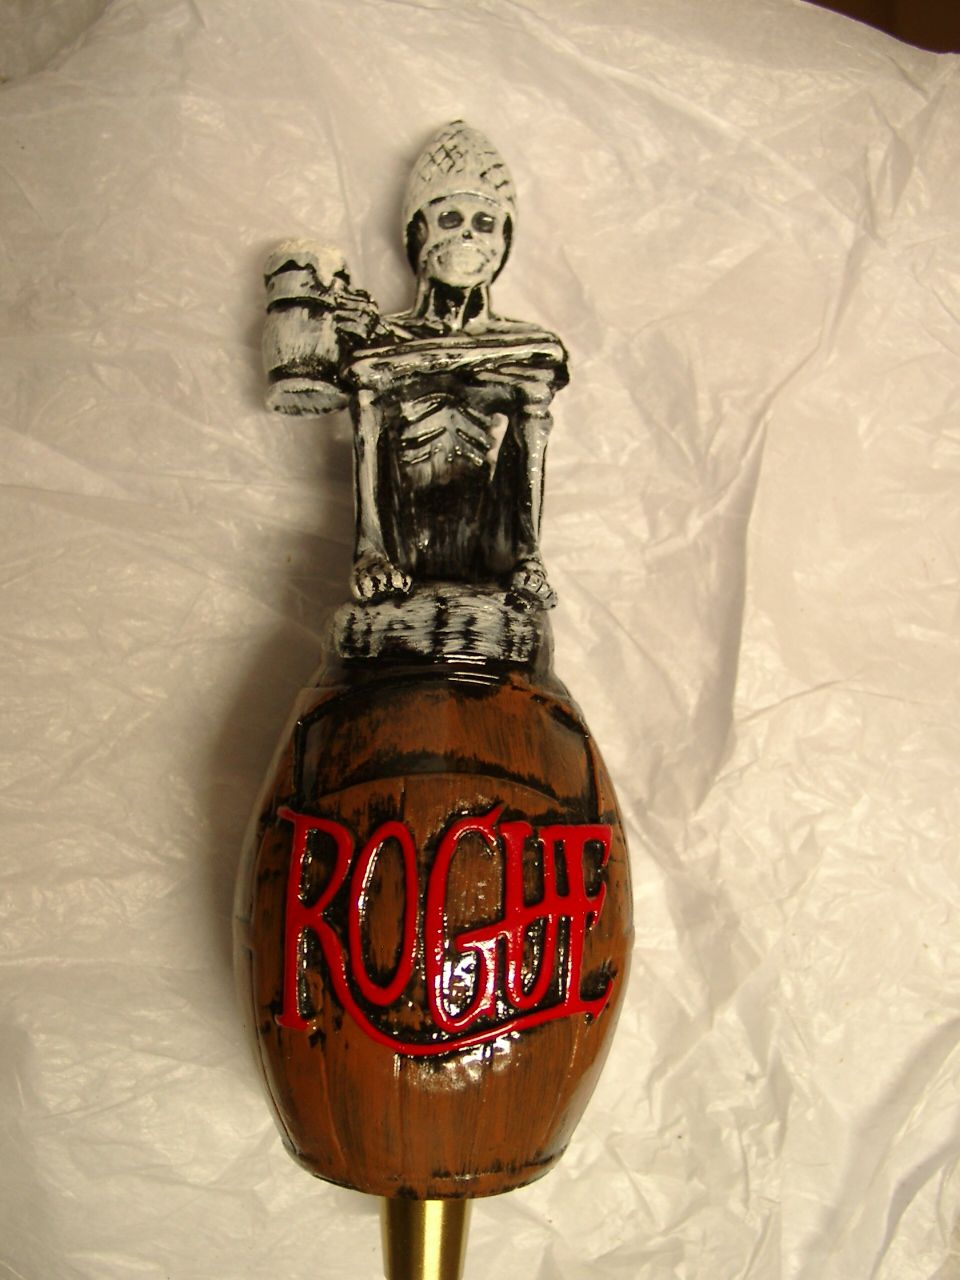 Rogue Dead Guy Ale Tap Handle   Beer   Pinterest   Ale, Beer and ...